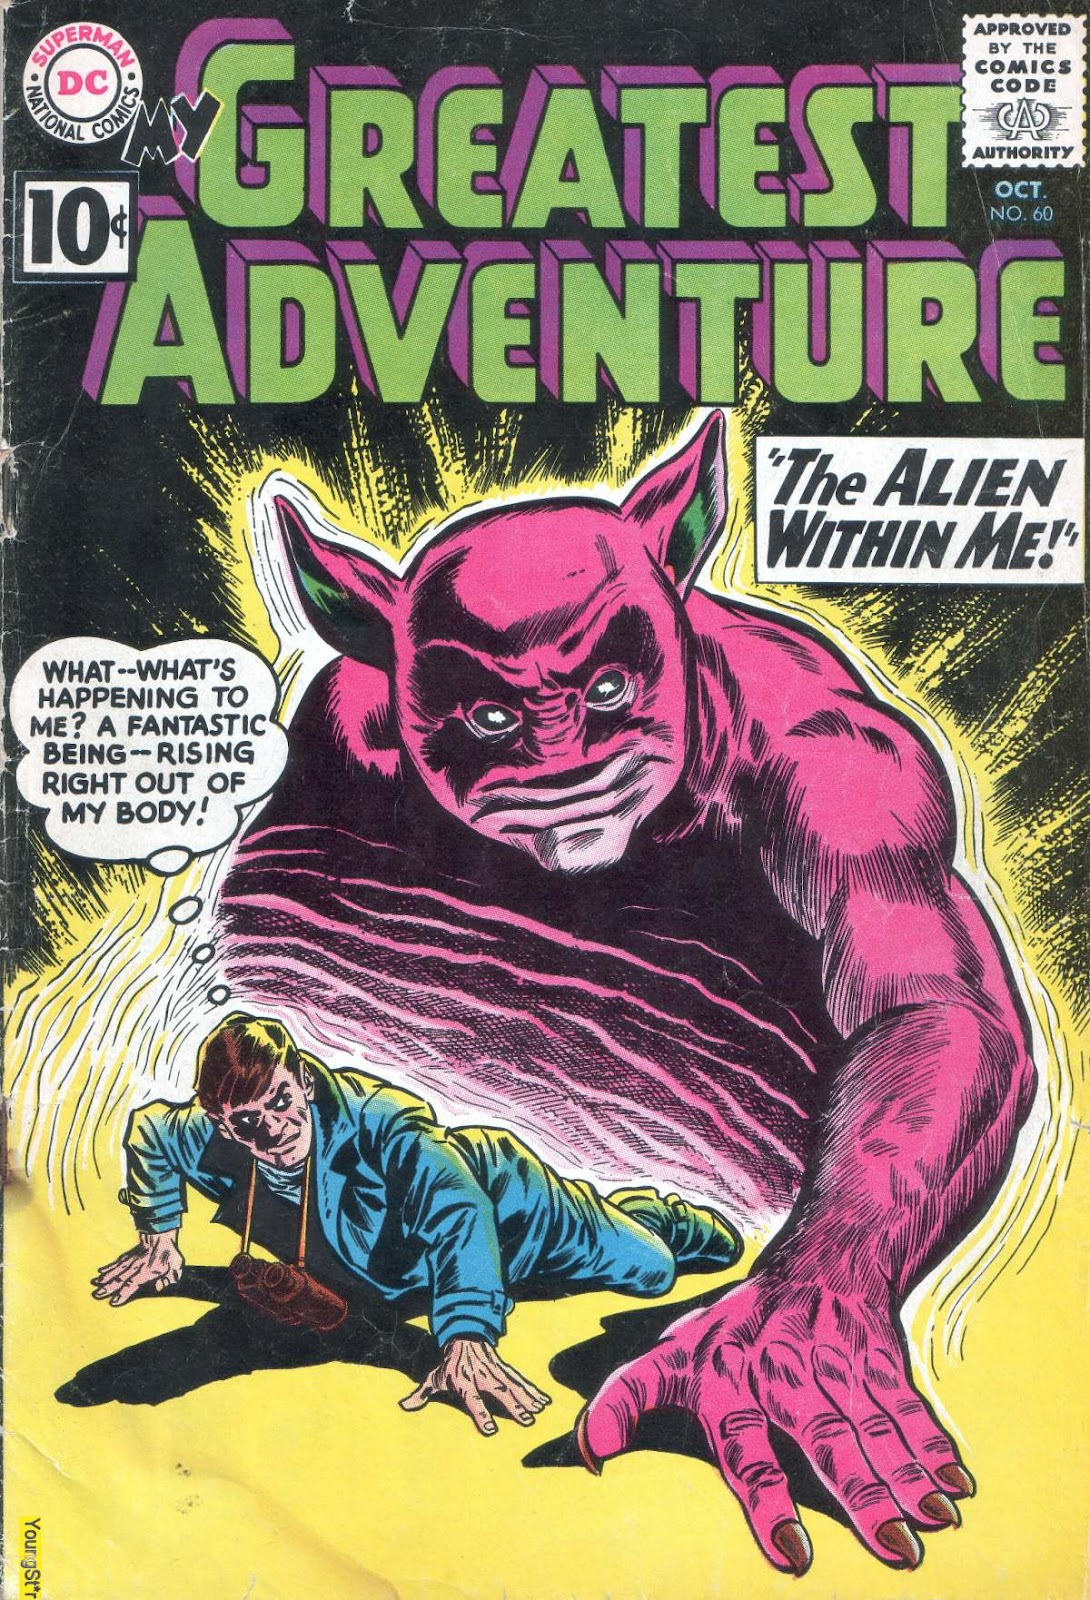 My Greatest Adventure (1955) issue 60 - Page 1